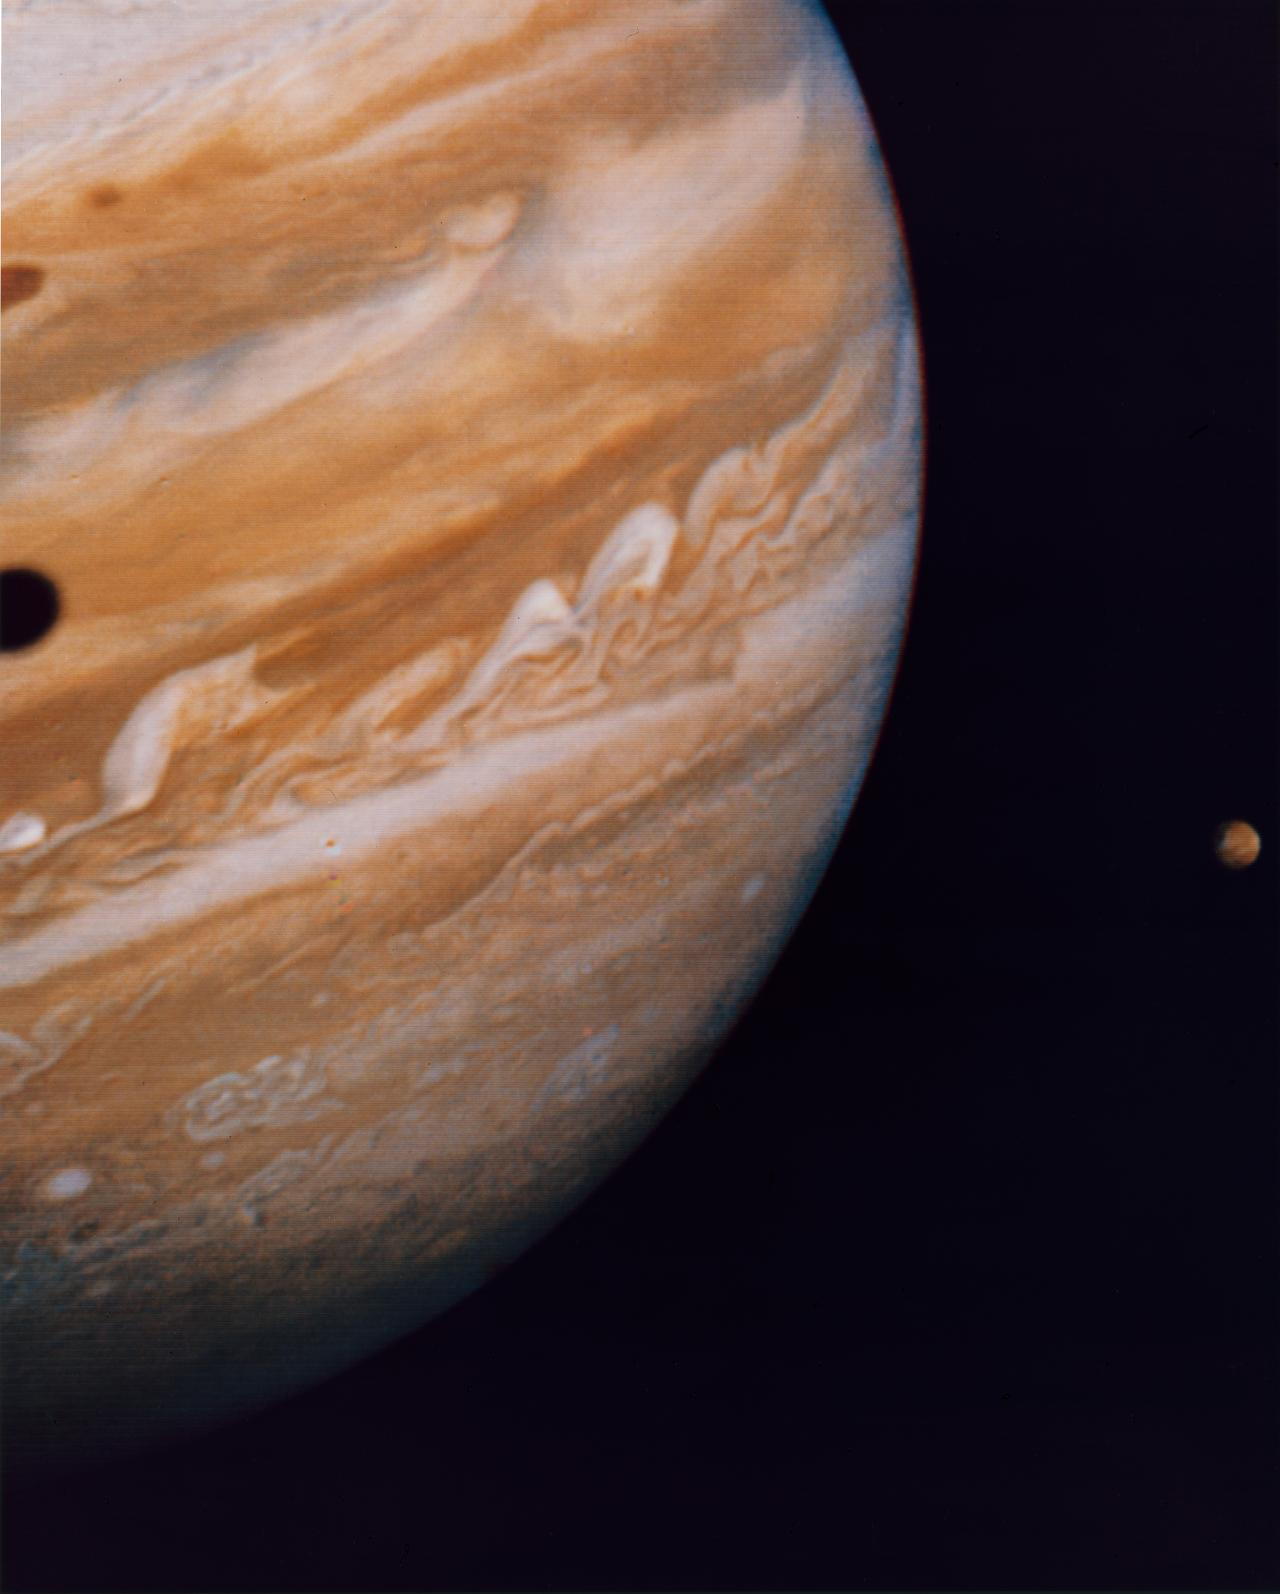 Jupiter, by Voyager 2 on 10 June 1979, with its moon Io and Ganymede's shadow